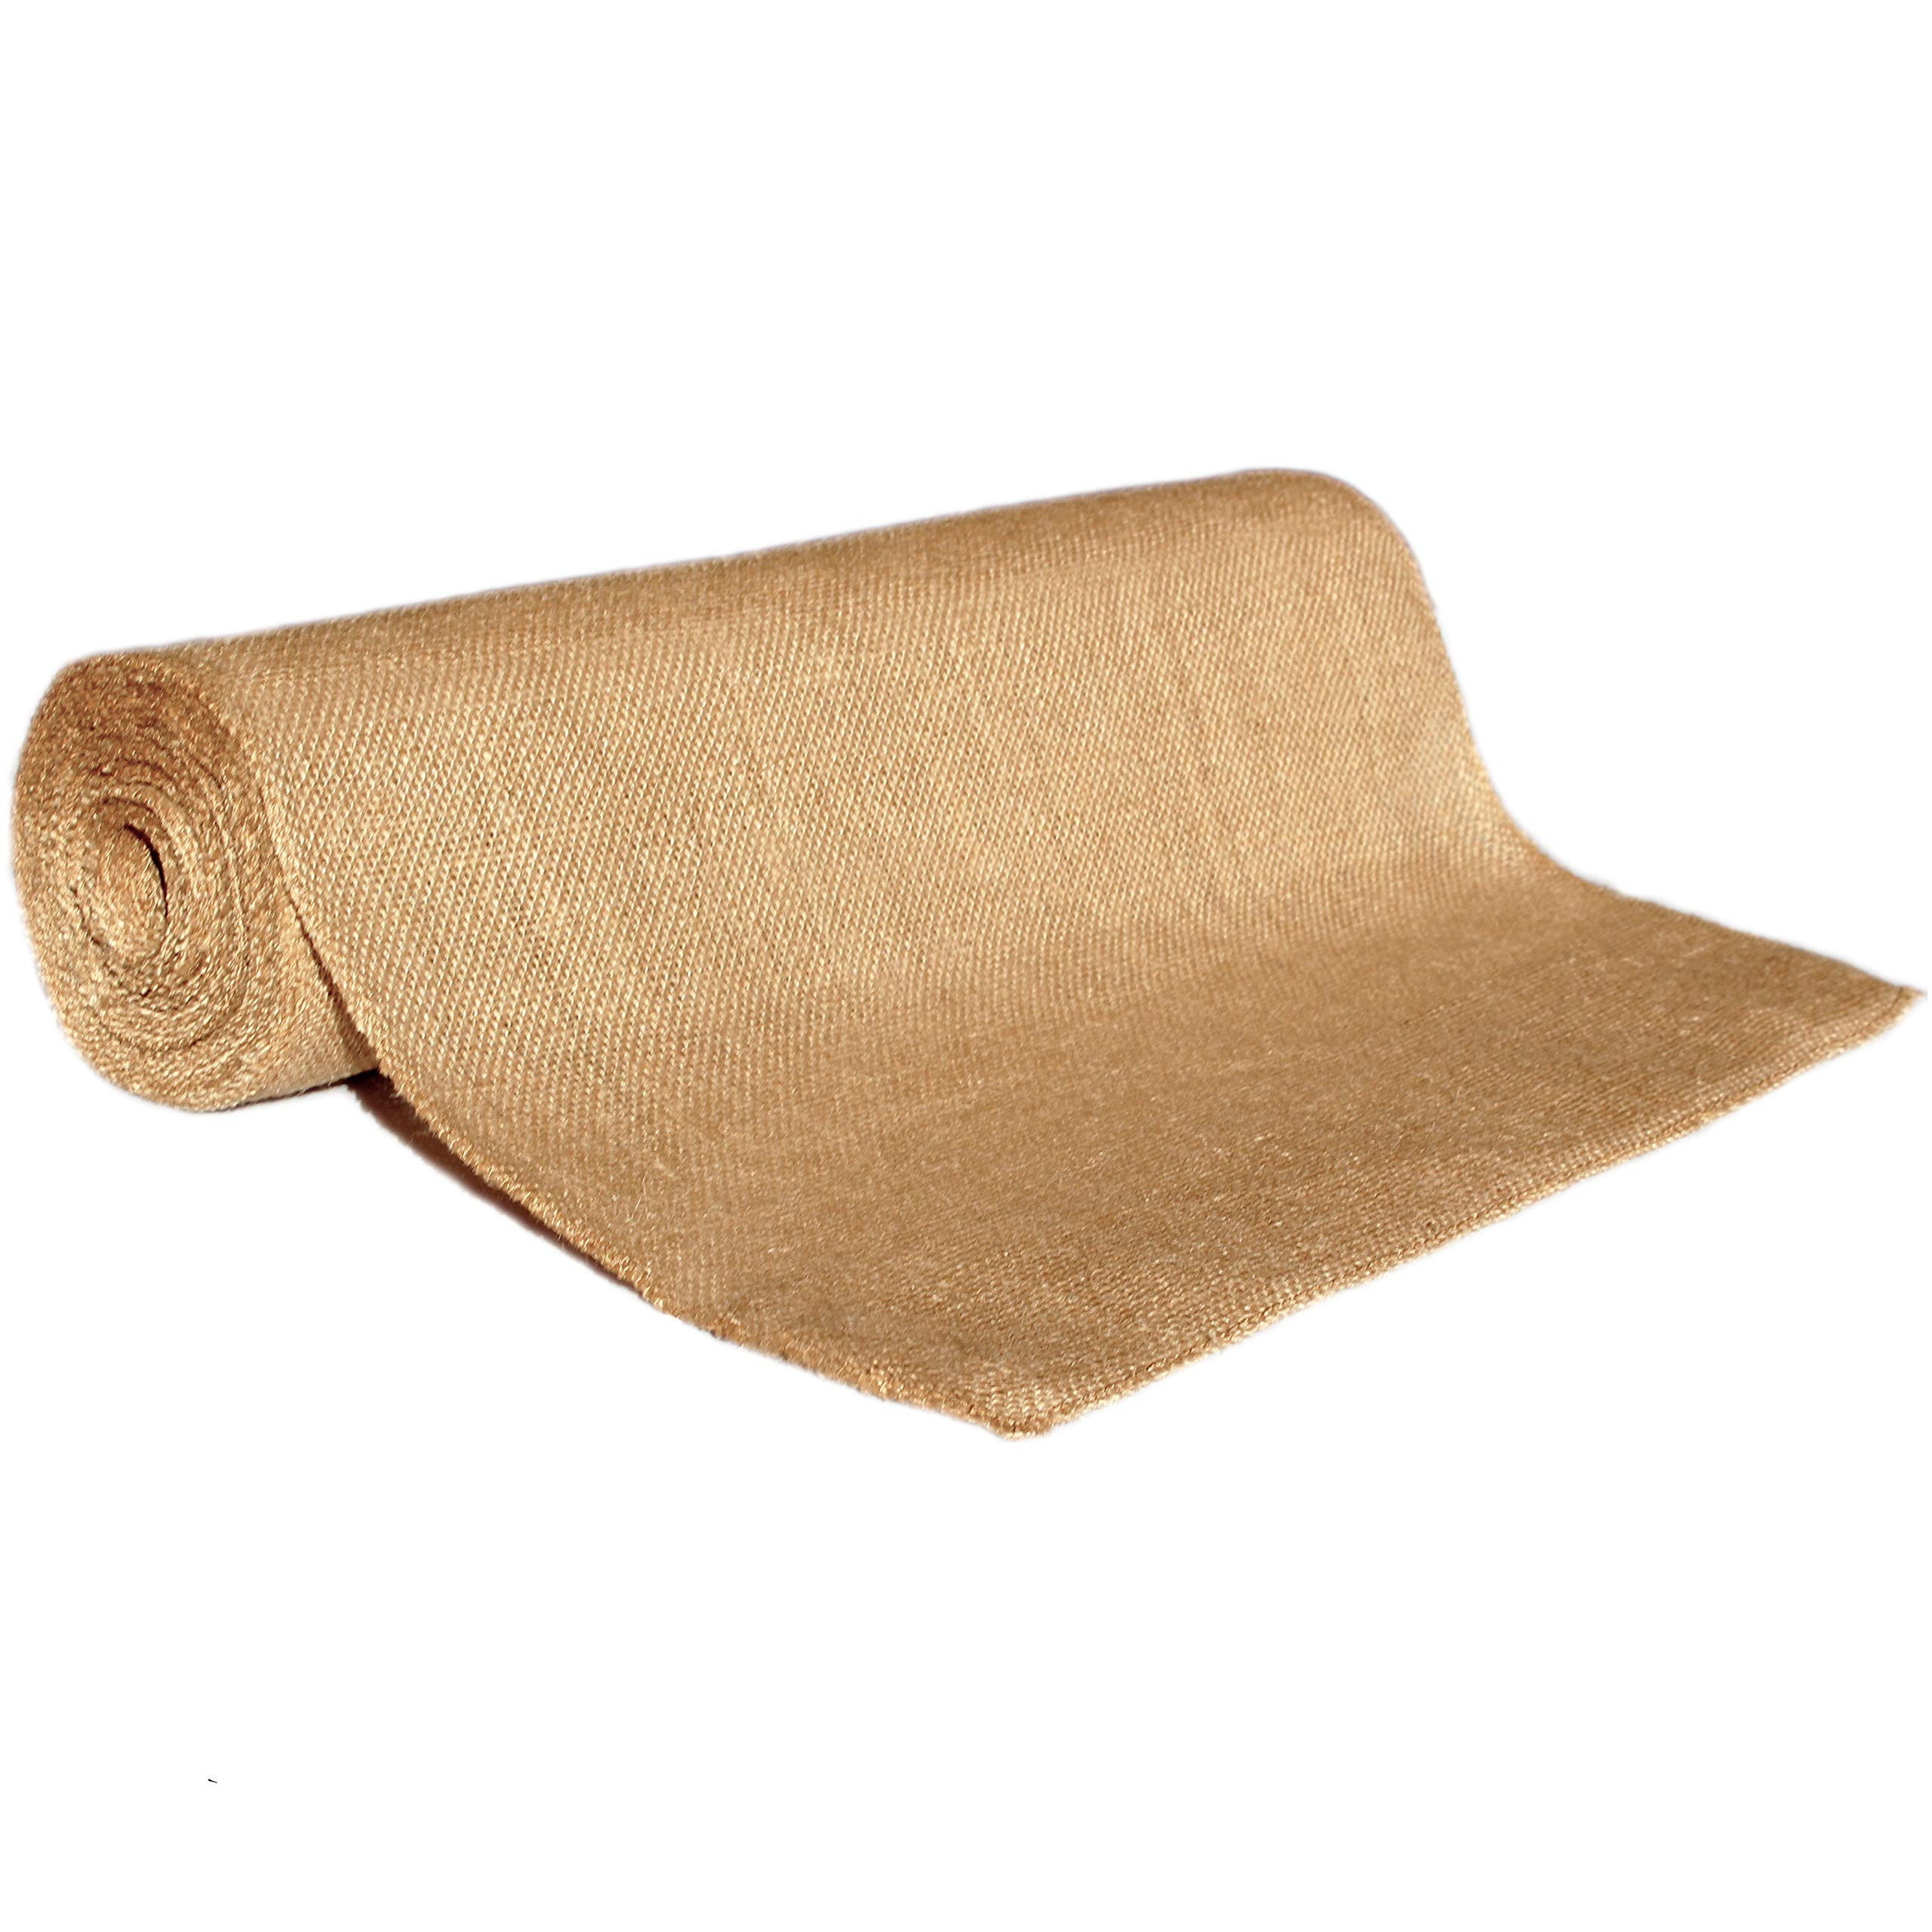 RichCraft Wide 18'' Burlap Table Runner Roll, NO-FRAY NO-Mess ~ 18'' Wide x 10 Yards Long Table Runner Fabric w/Finished Edges. Perfect for Weddings, Placemat, Crafts. Decorate Without The Mess! by RichCraft (Image #1)